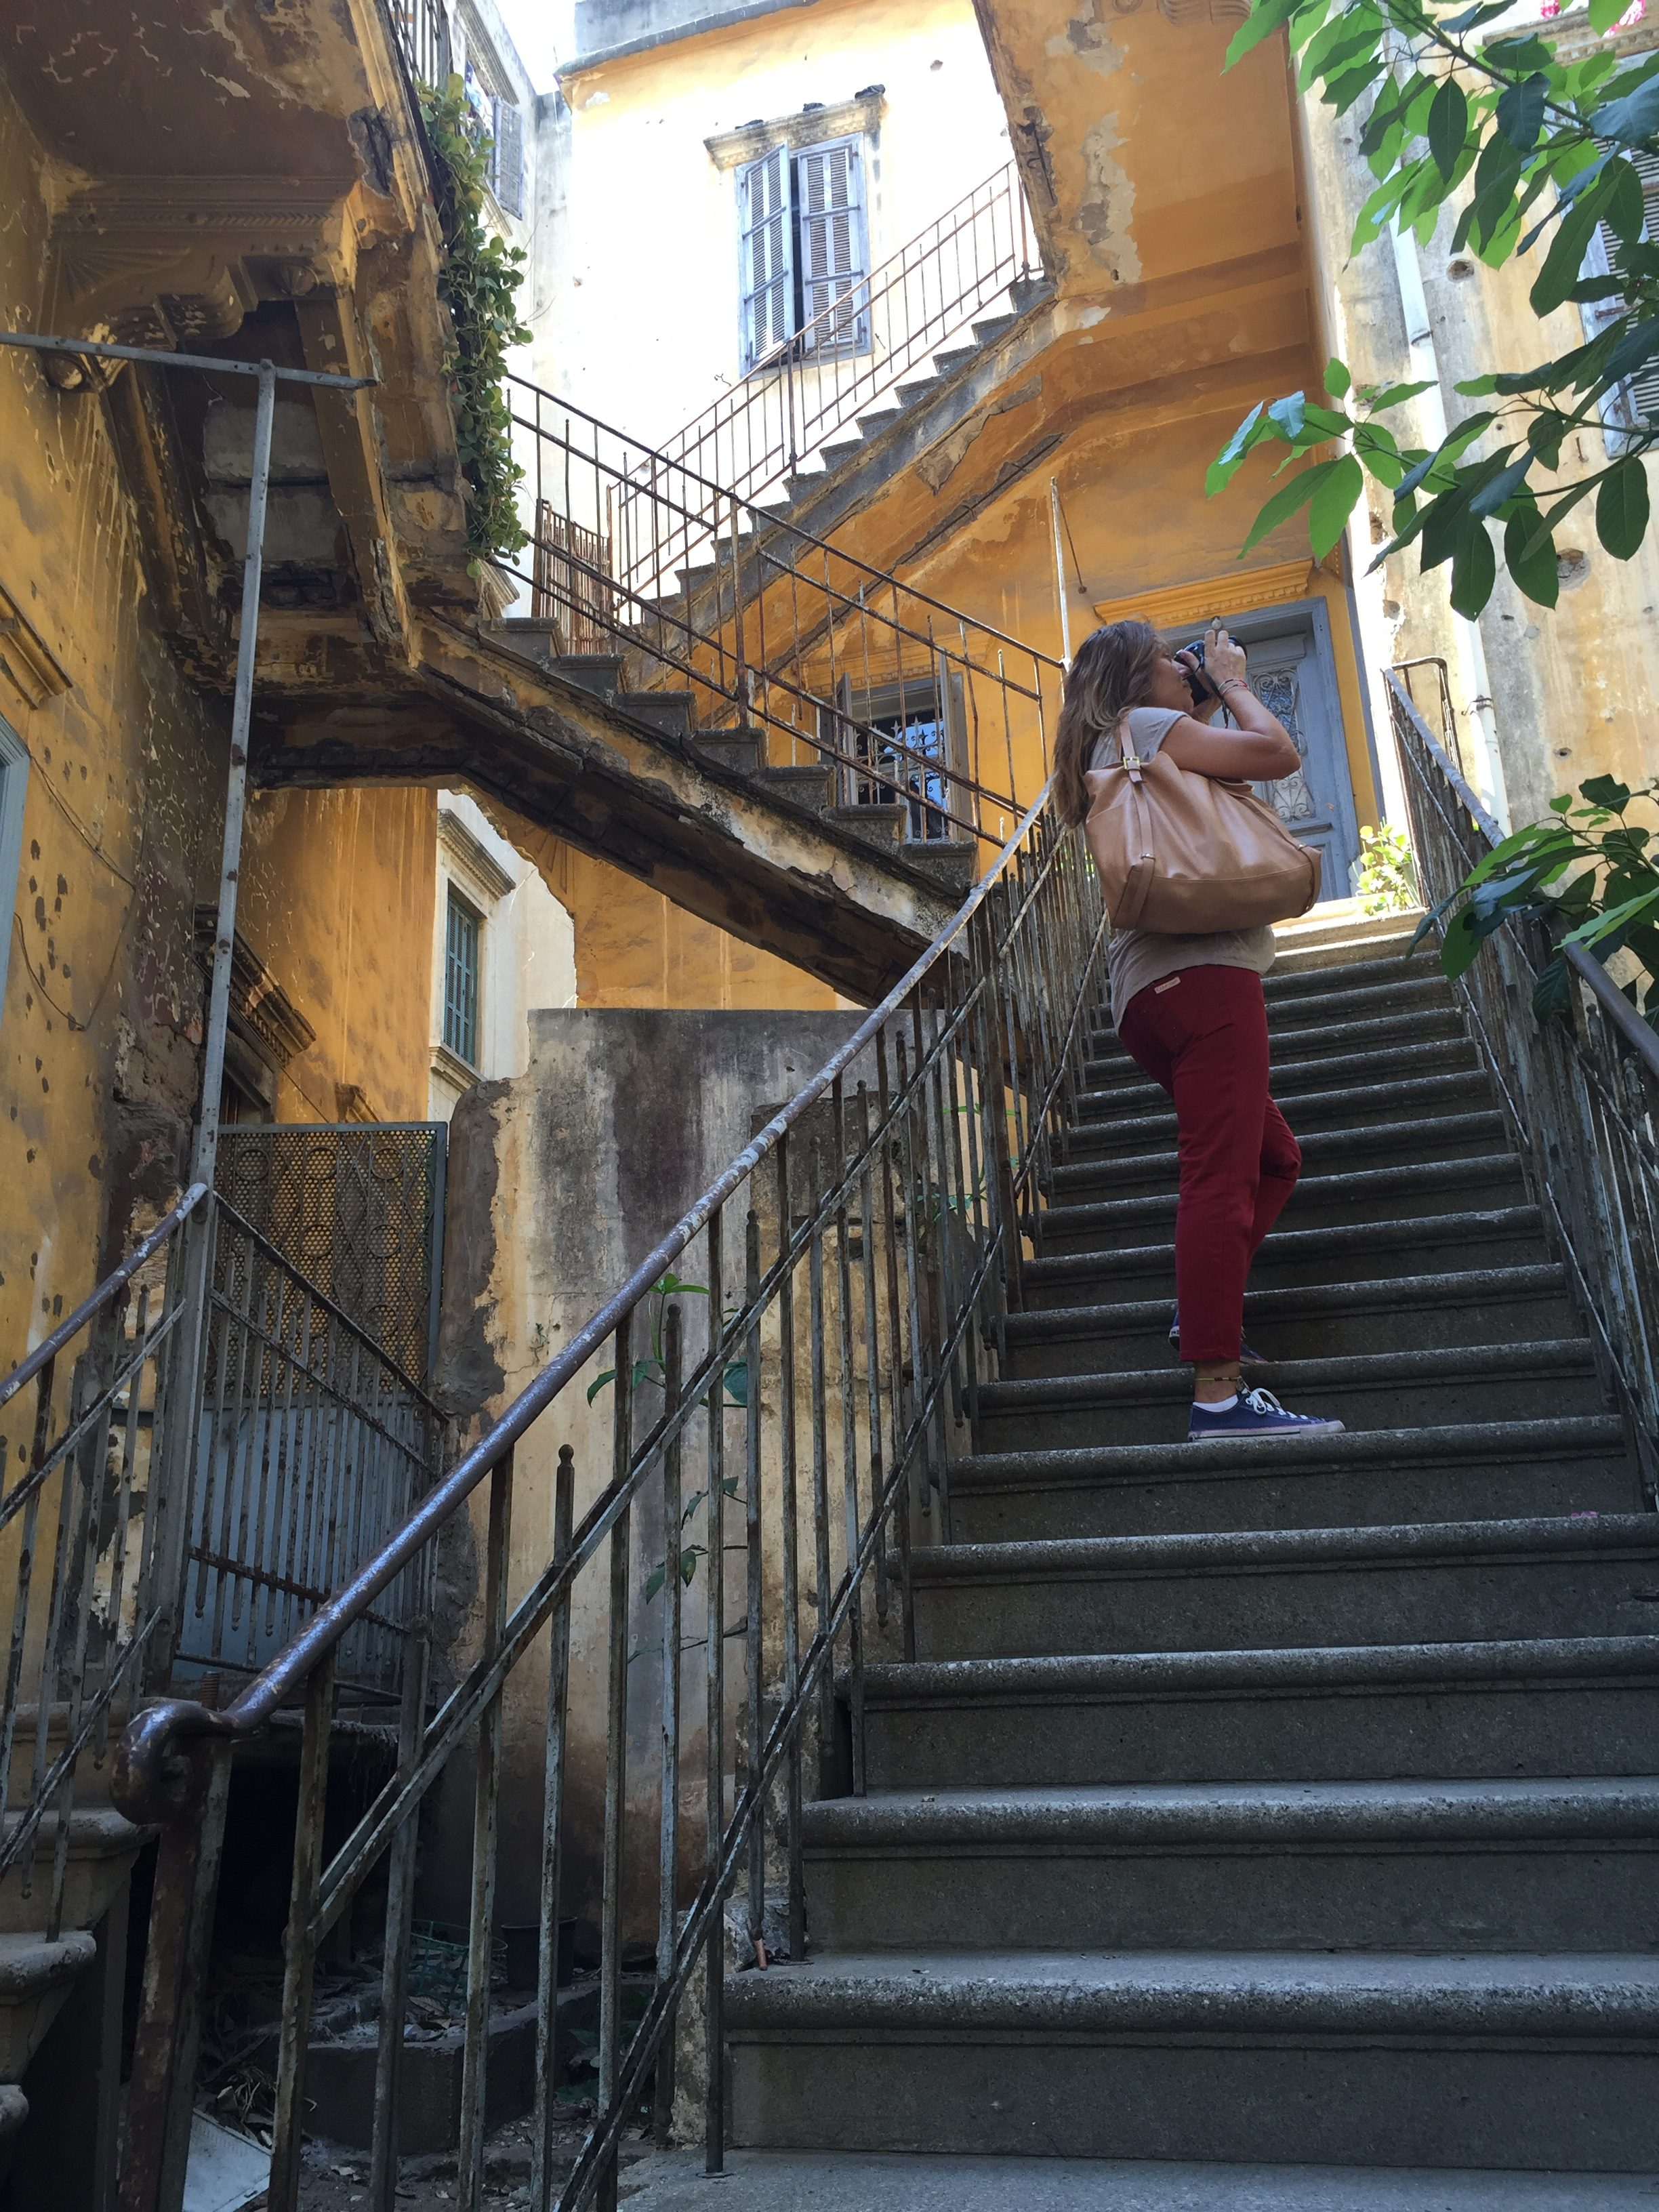 A staircase connecting several buildings in Old Beirut